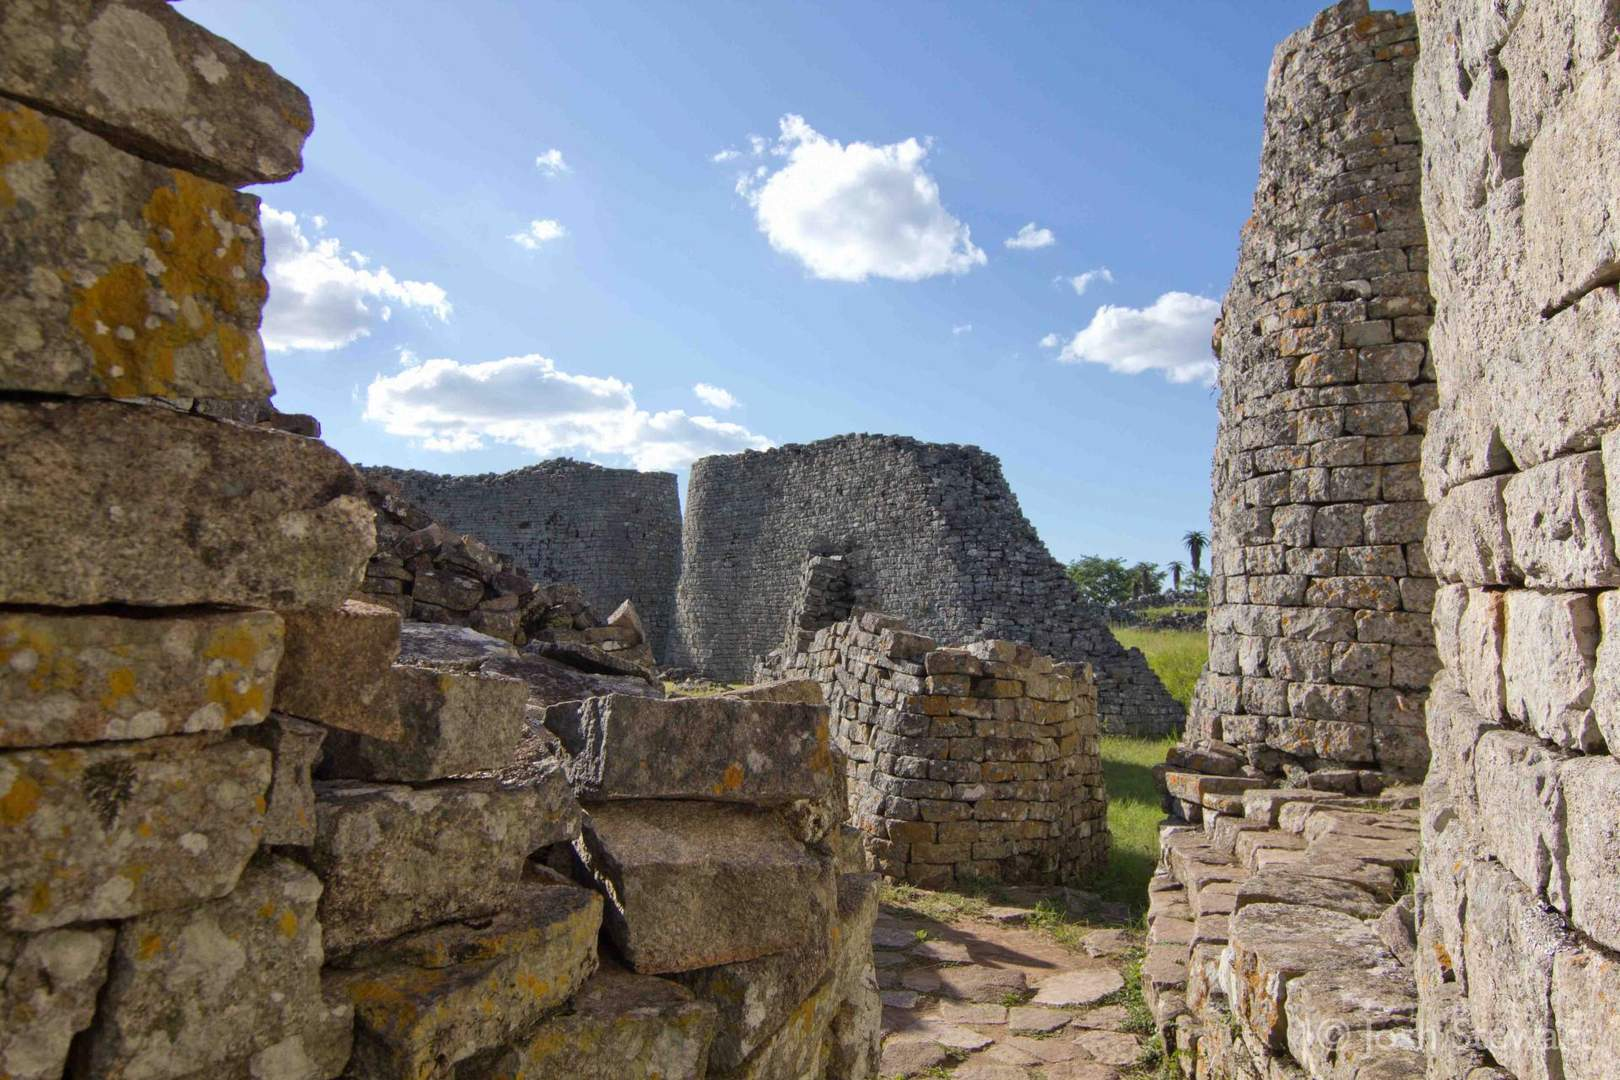 The Mysterious Ancient City Of Great Zimbabwe 187 Tripfreakz Com